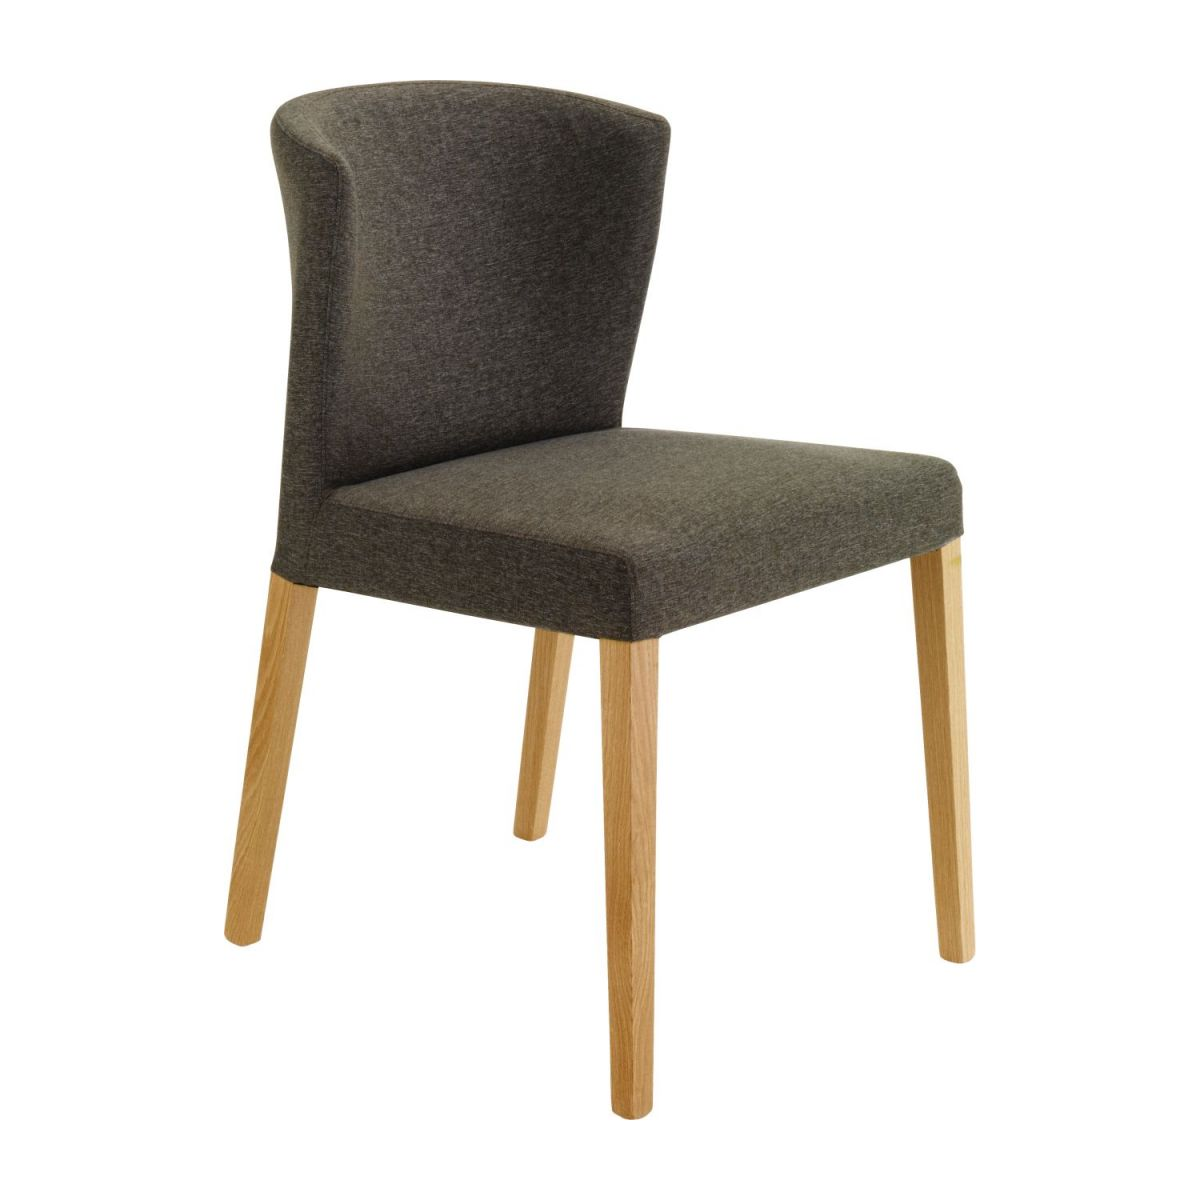 Dining Room Chair N1